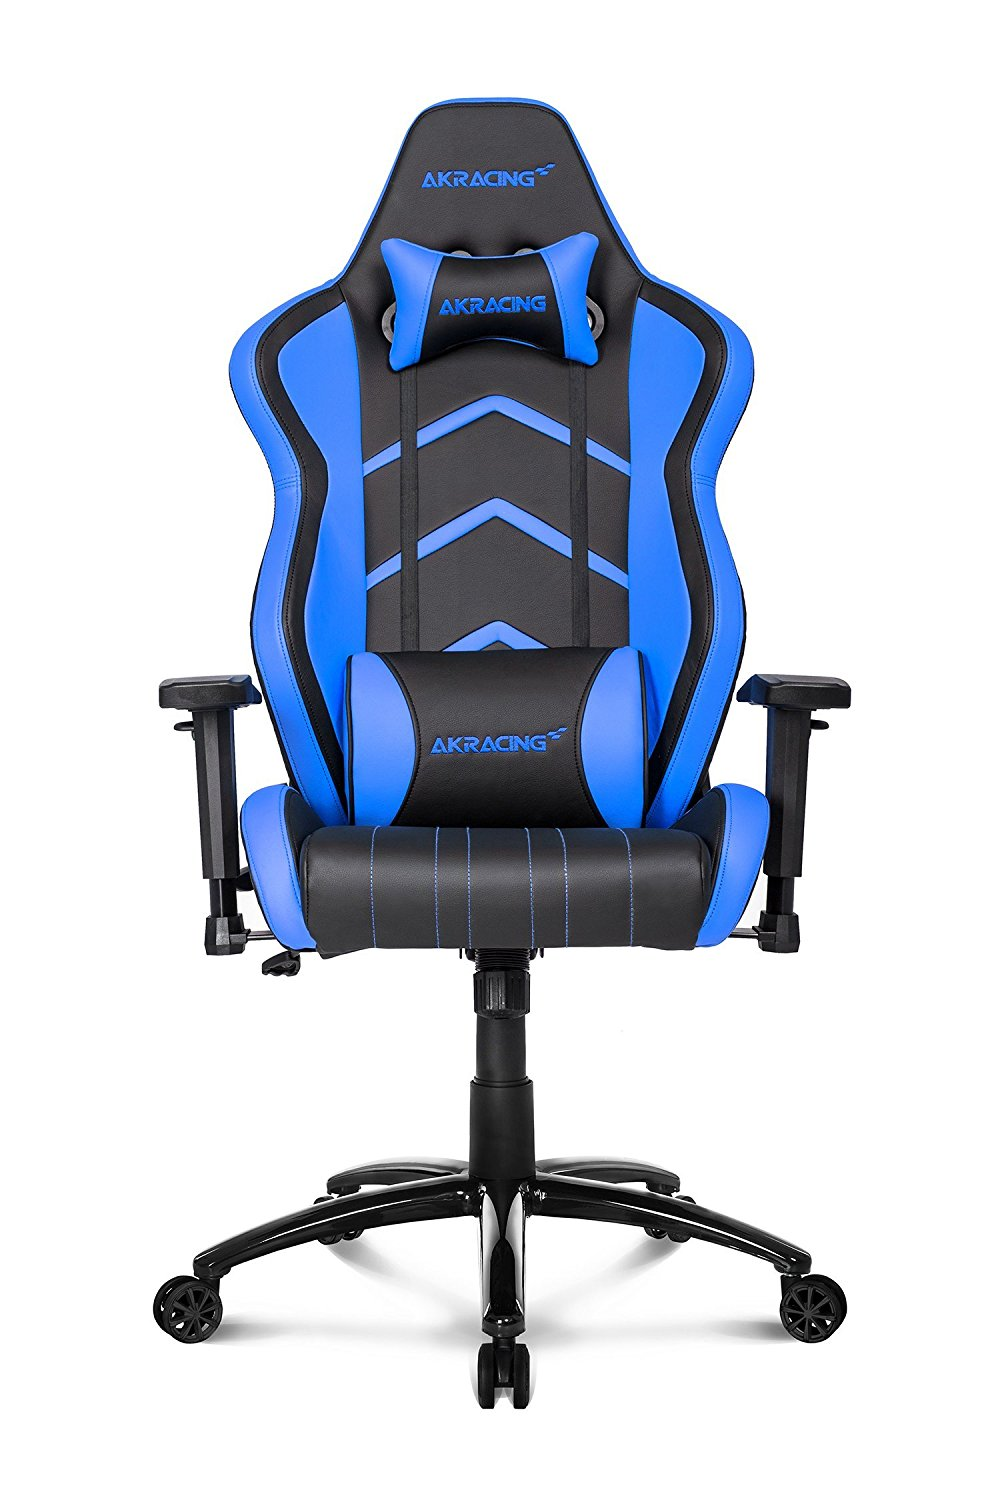 Ak Racing Sessel Best Gaming Chairs For Cs Go In 2019 Approved By Pro Players